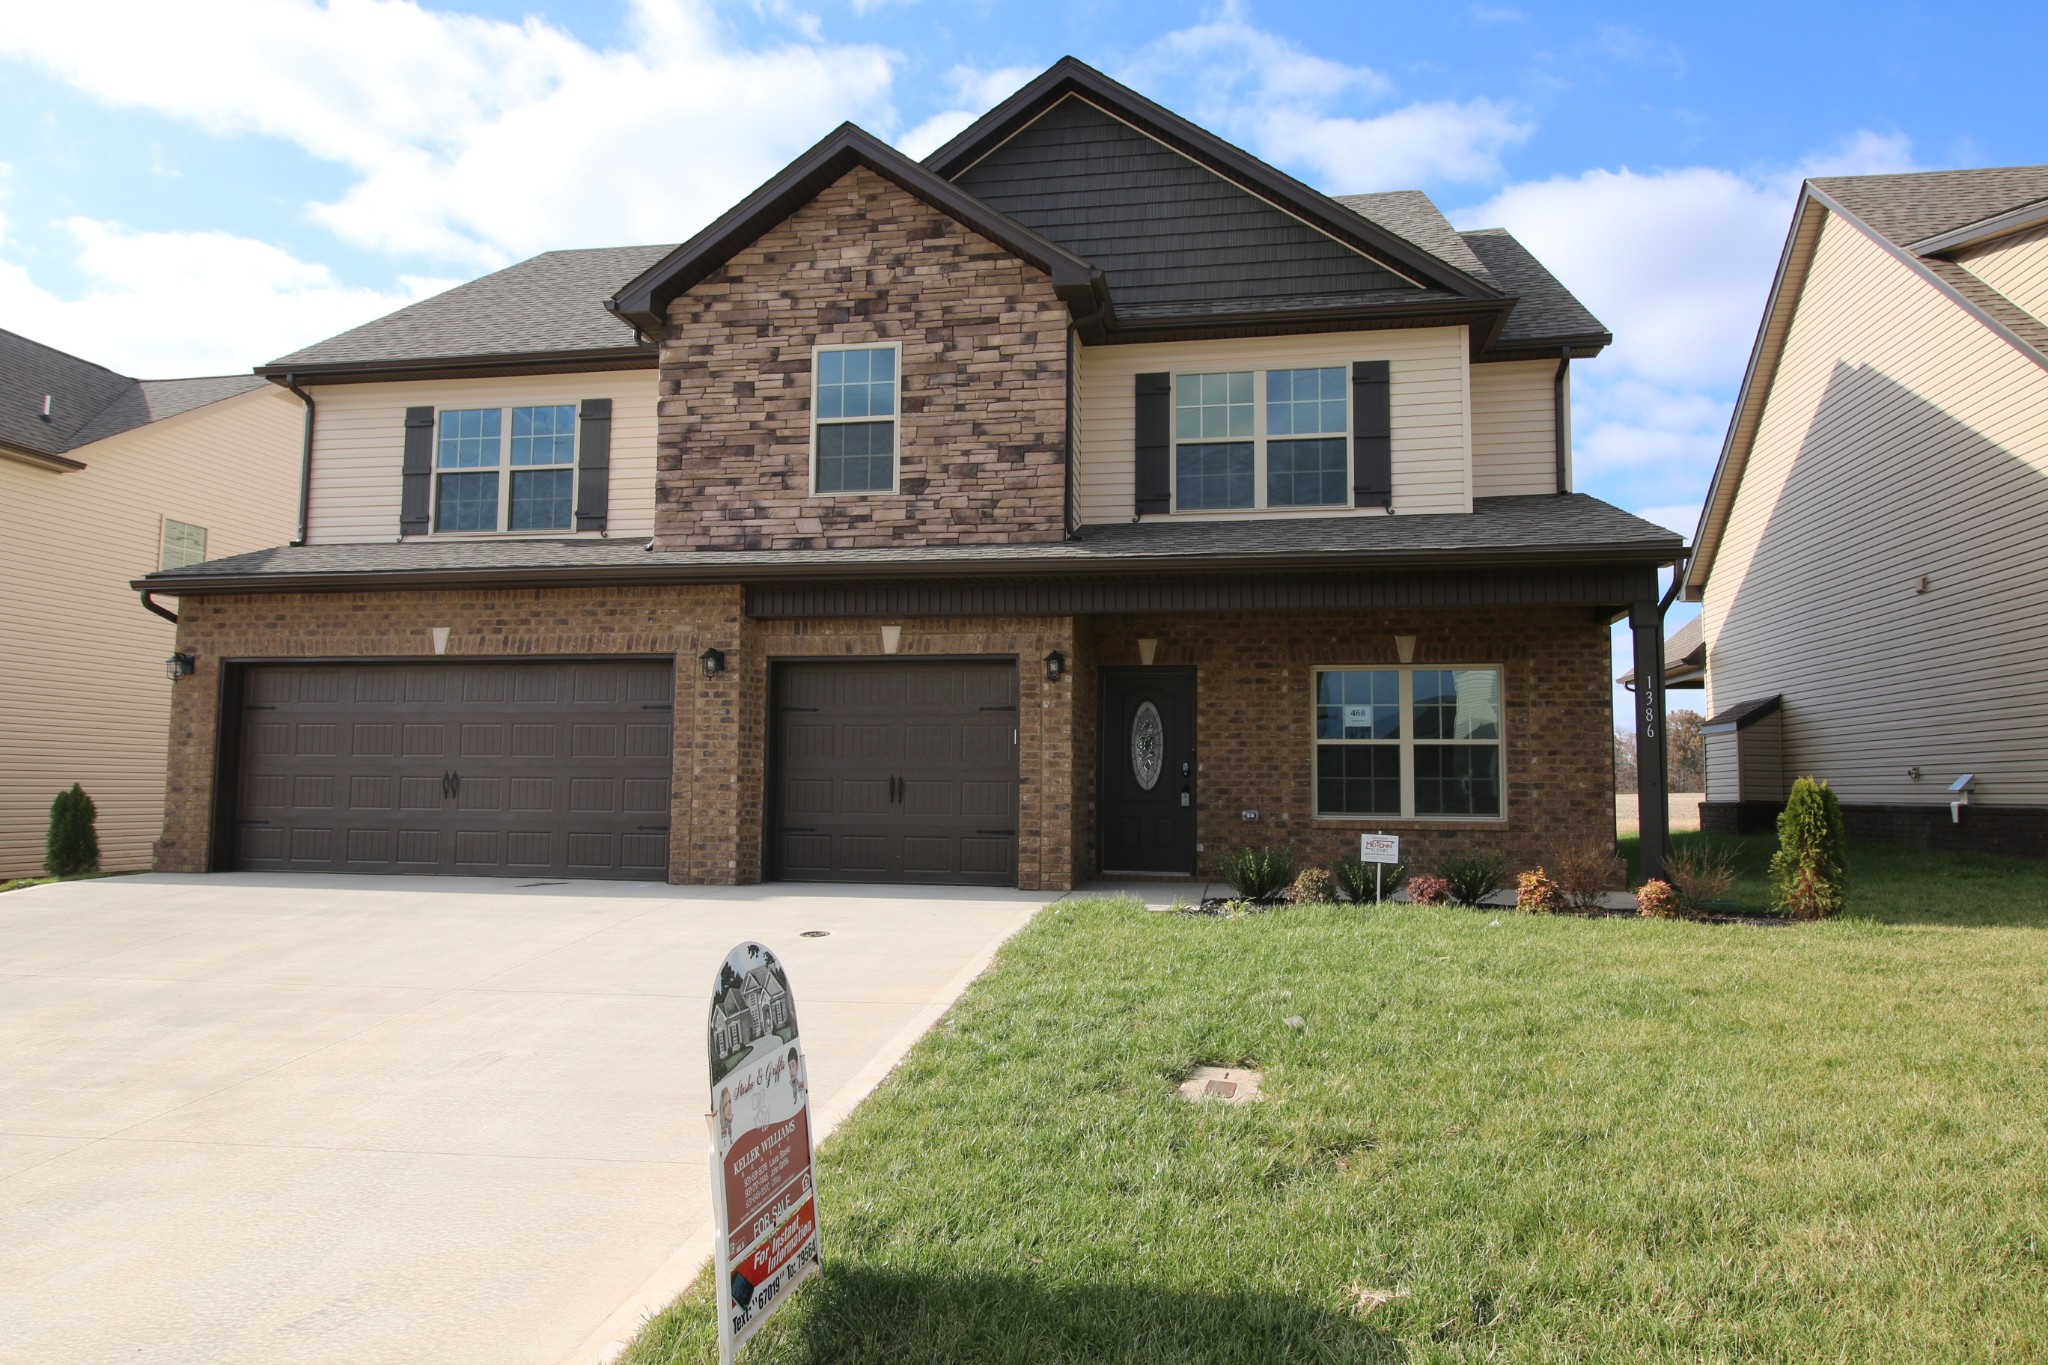 468 Summerfield, Clarksville, TN 37040 - Clarksville, TN real estate listing